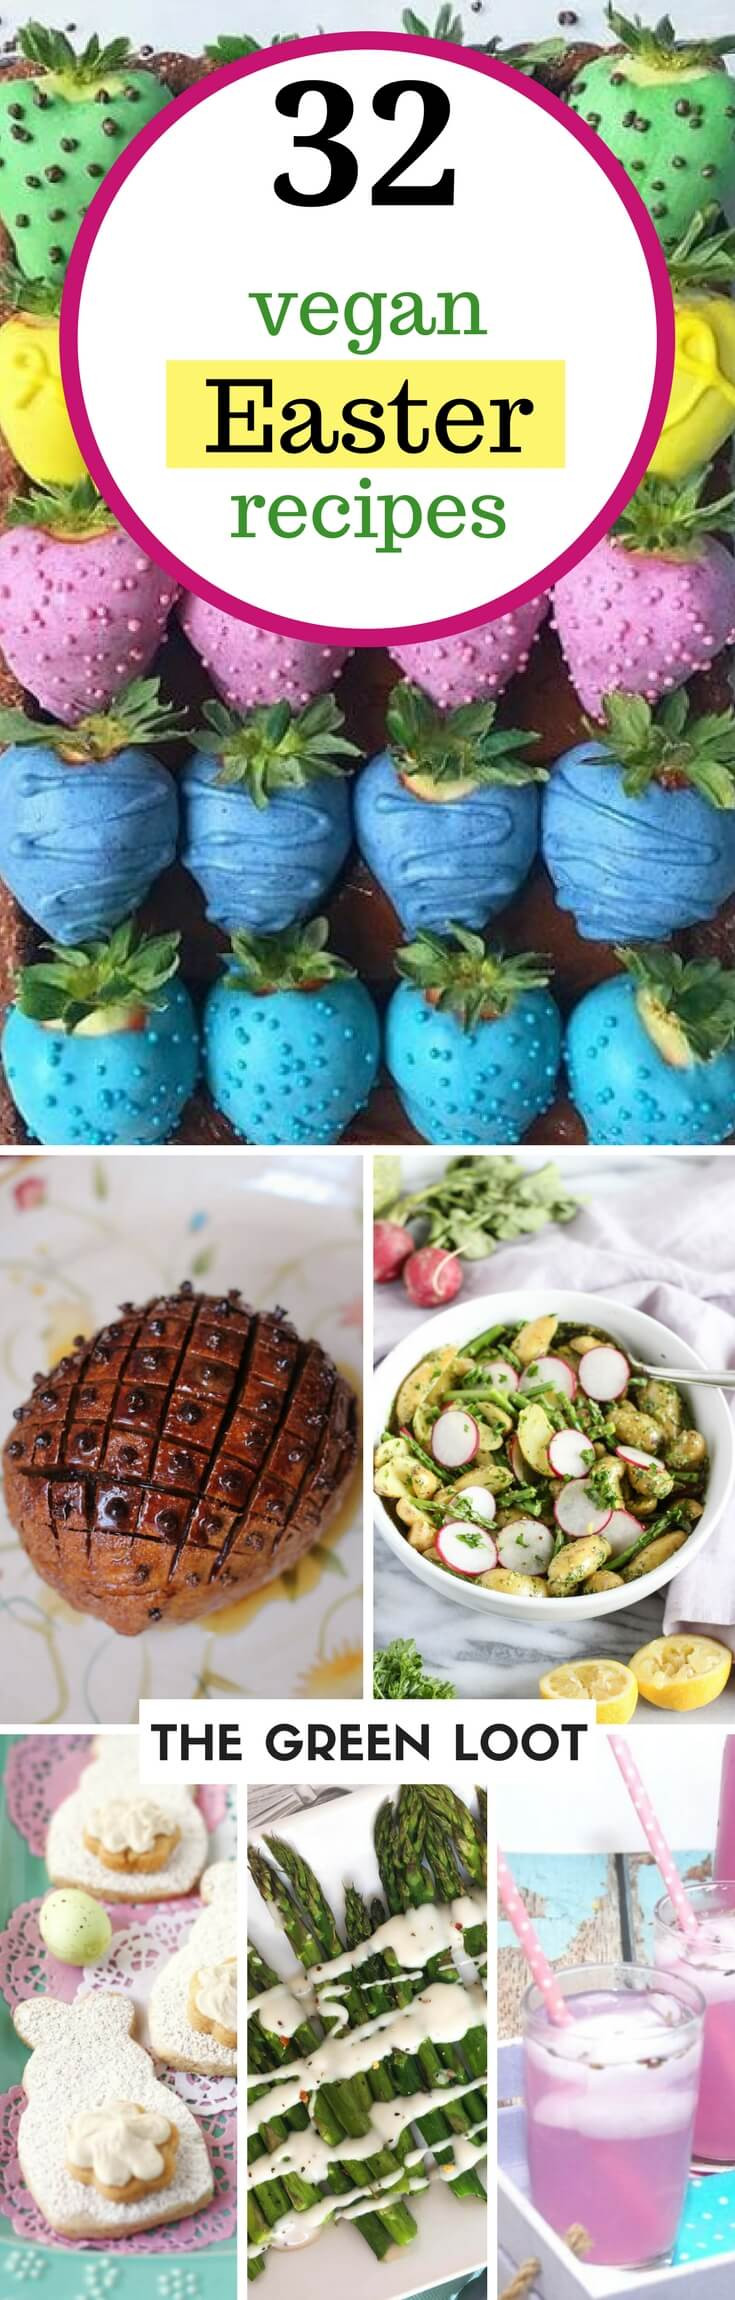 Vegan Recipes For Easter  32 Vegan Easter Recipes the Whole Family Will LOVE